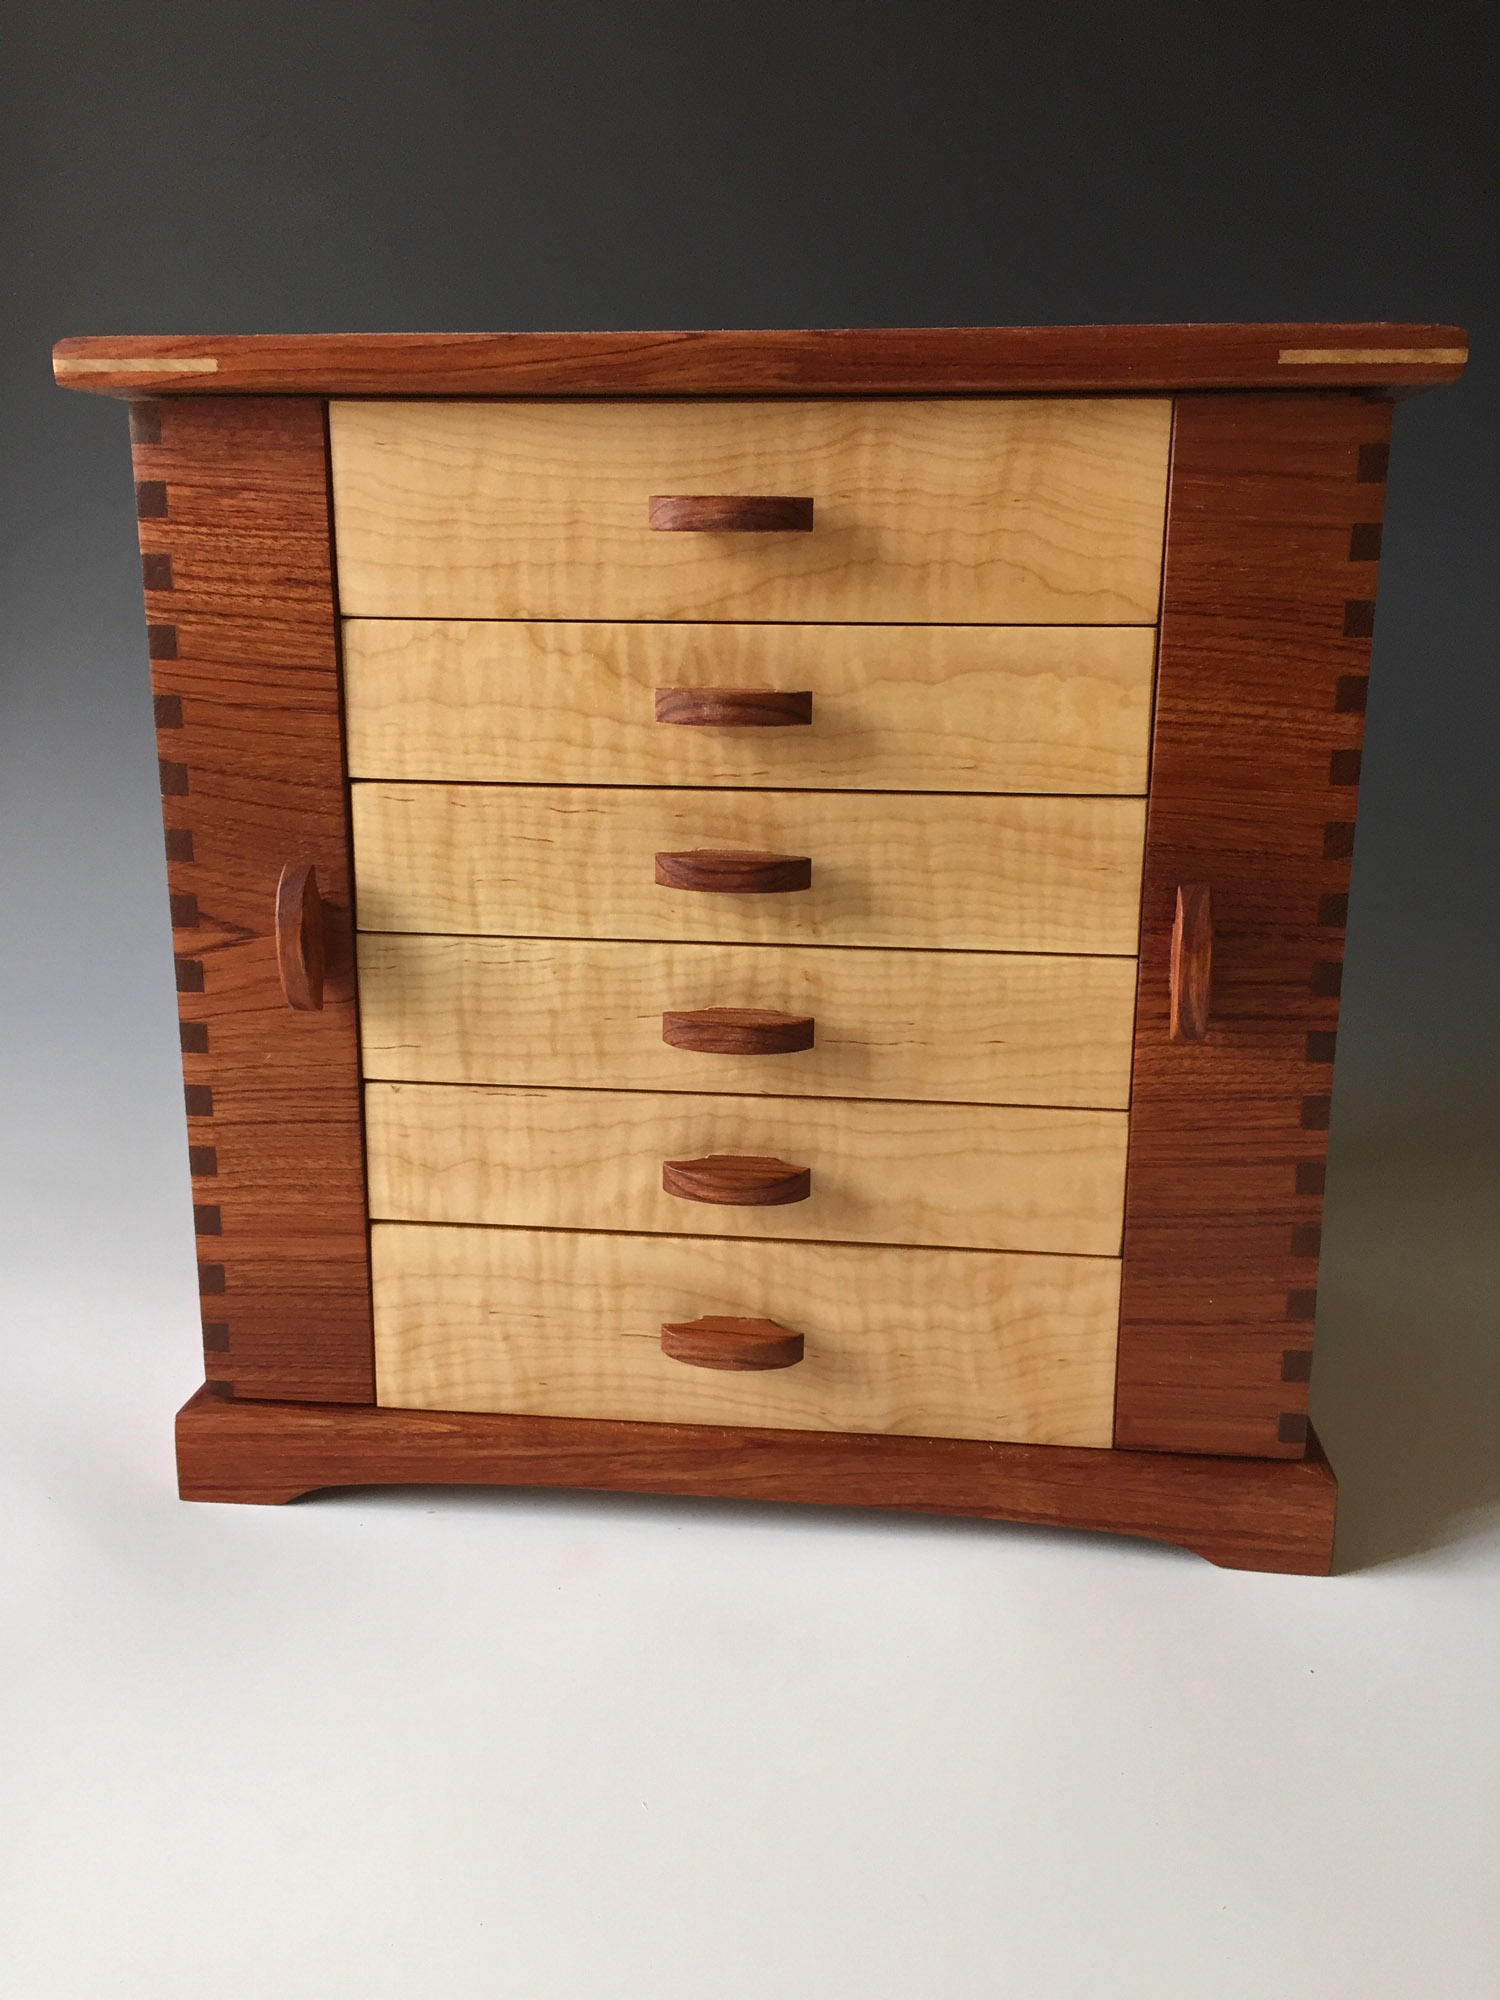 Another photo of a standing jewelry box shown in bubinga, a red wood from Africa.